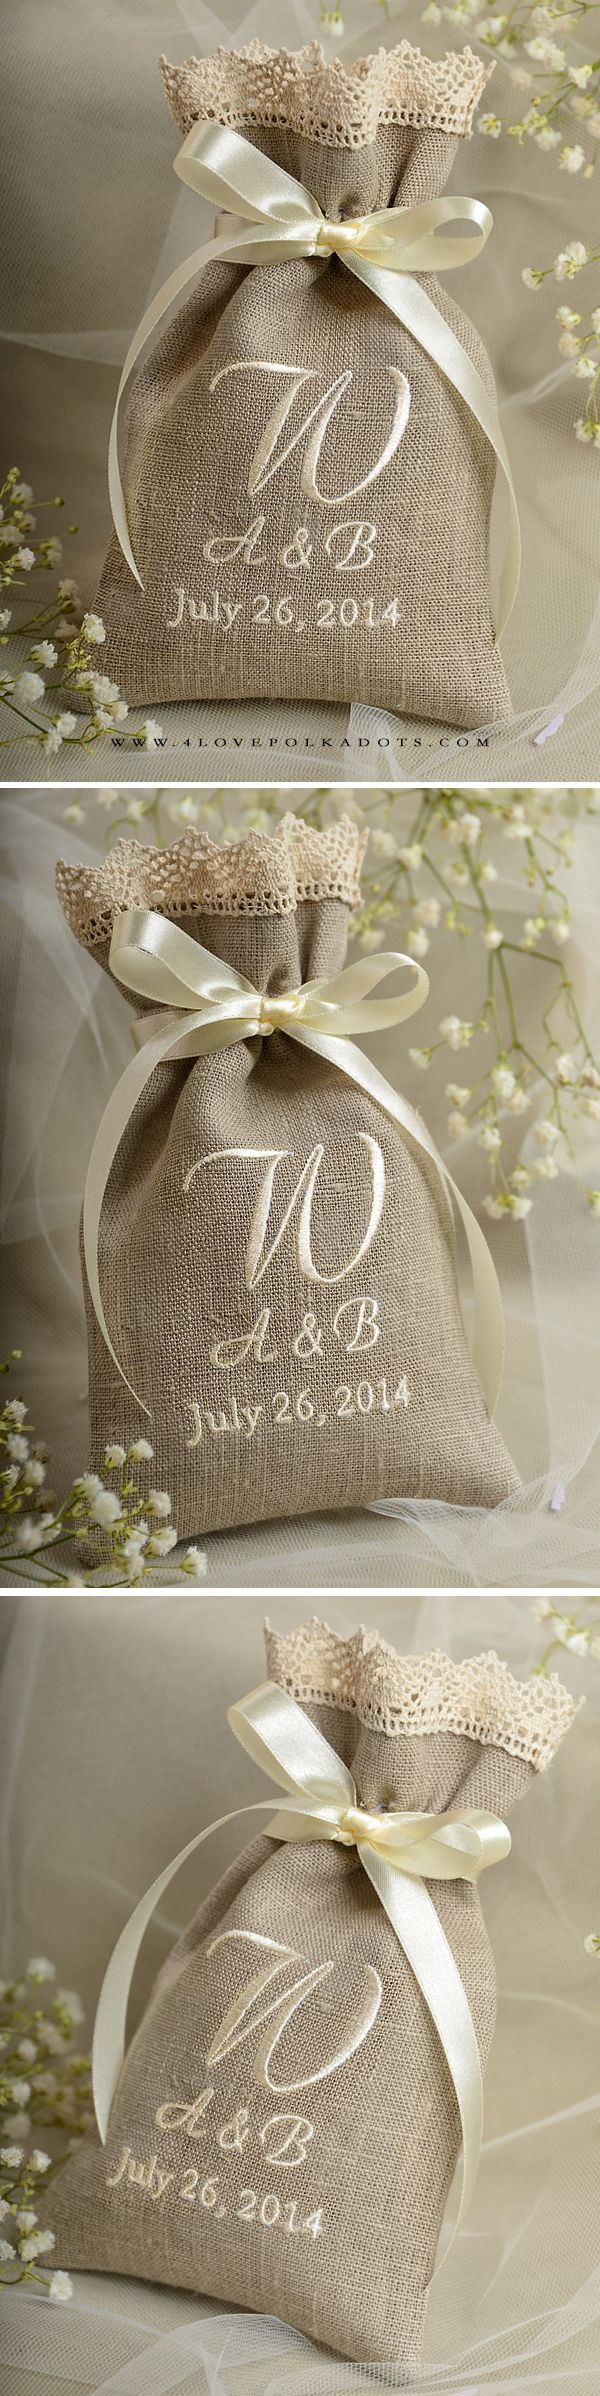 Natural Linen Wedding Favor Bag with Embroidery #countrywedding #rustic #barn #handmade